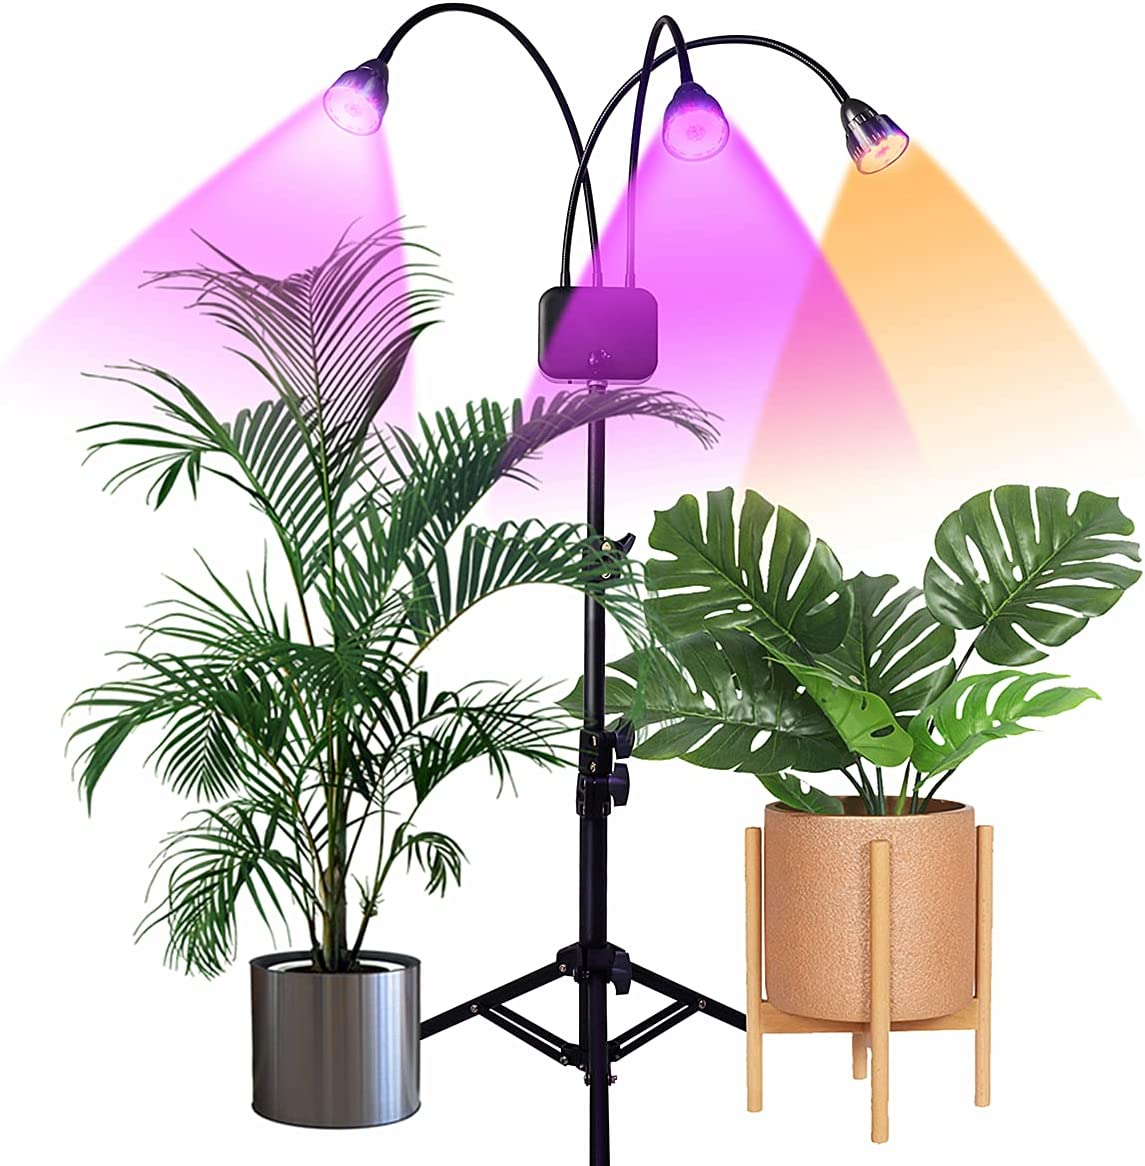 Buy Grow Lights with Stand,Juhefa Full Spectrum Tri-Head 60W LED Floor  Plant Light for Indoor Plants,Timing 3/9/12H,Tripod Adjustable 15-47 inch  Online in Indonesia. B07XY2VPTJ